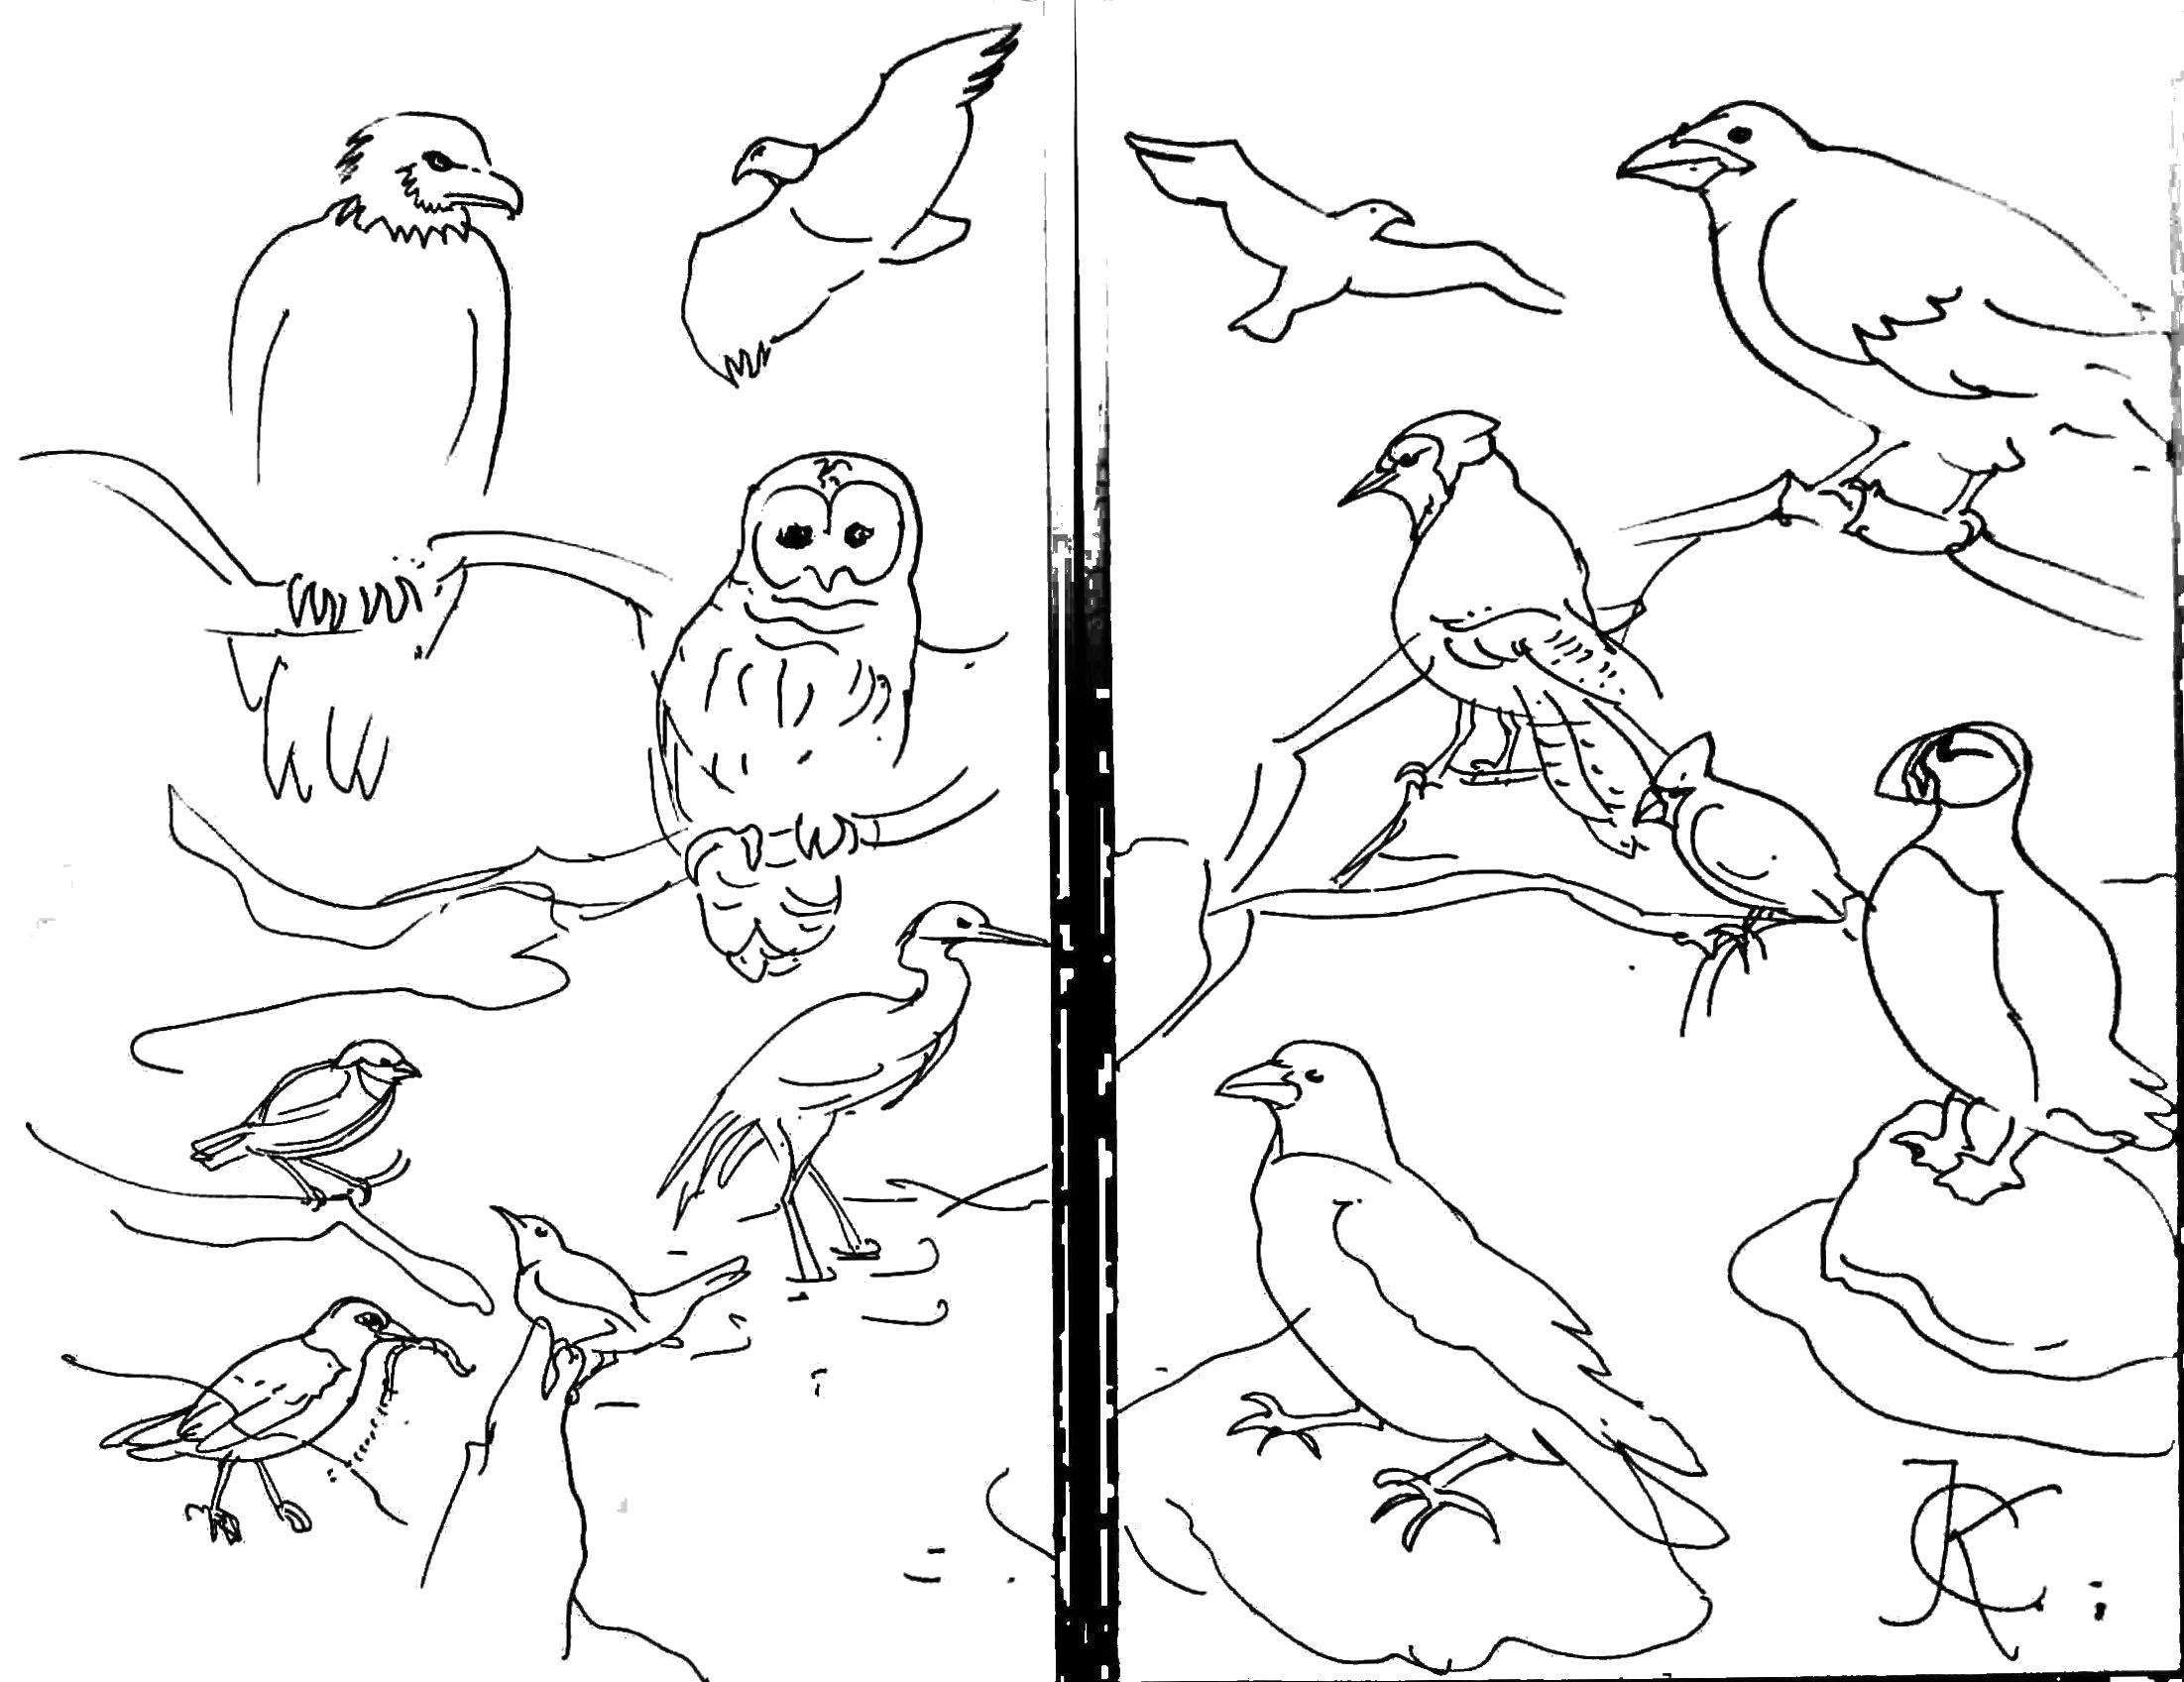 Geese Migration coloring #1, Download drawings